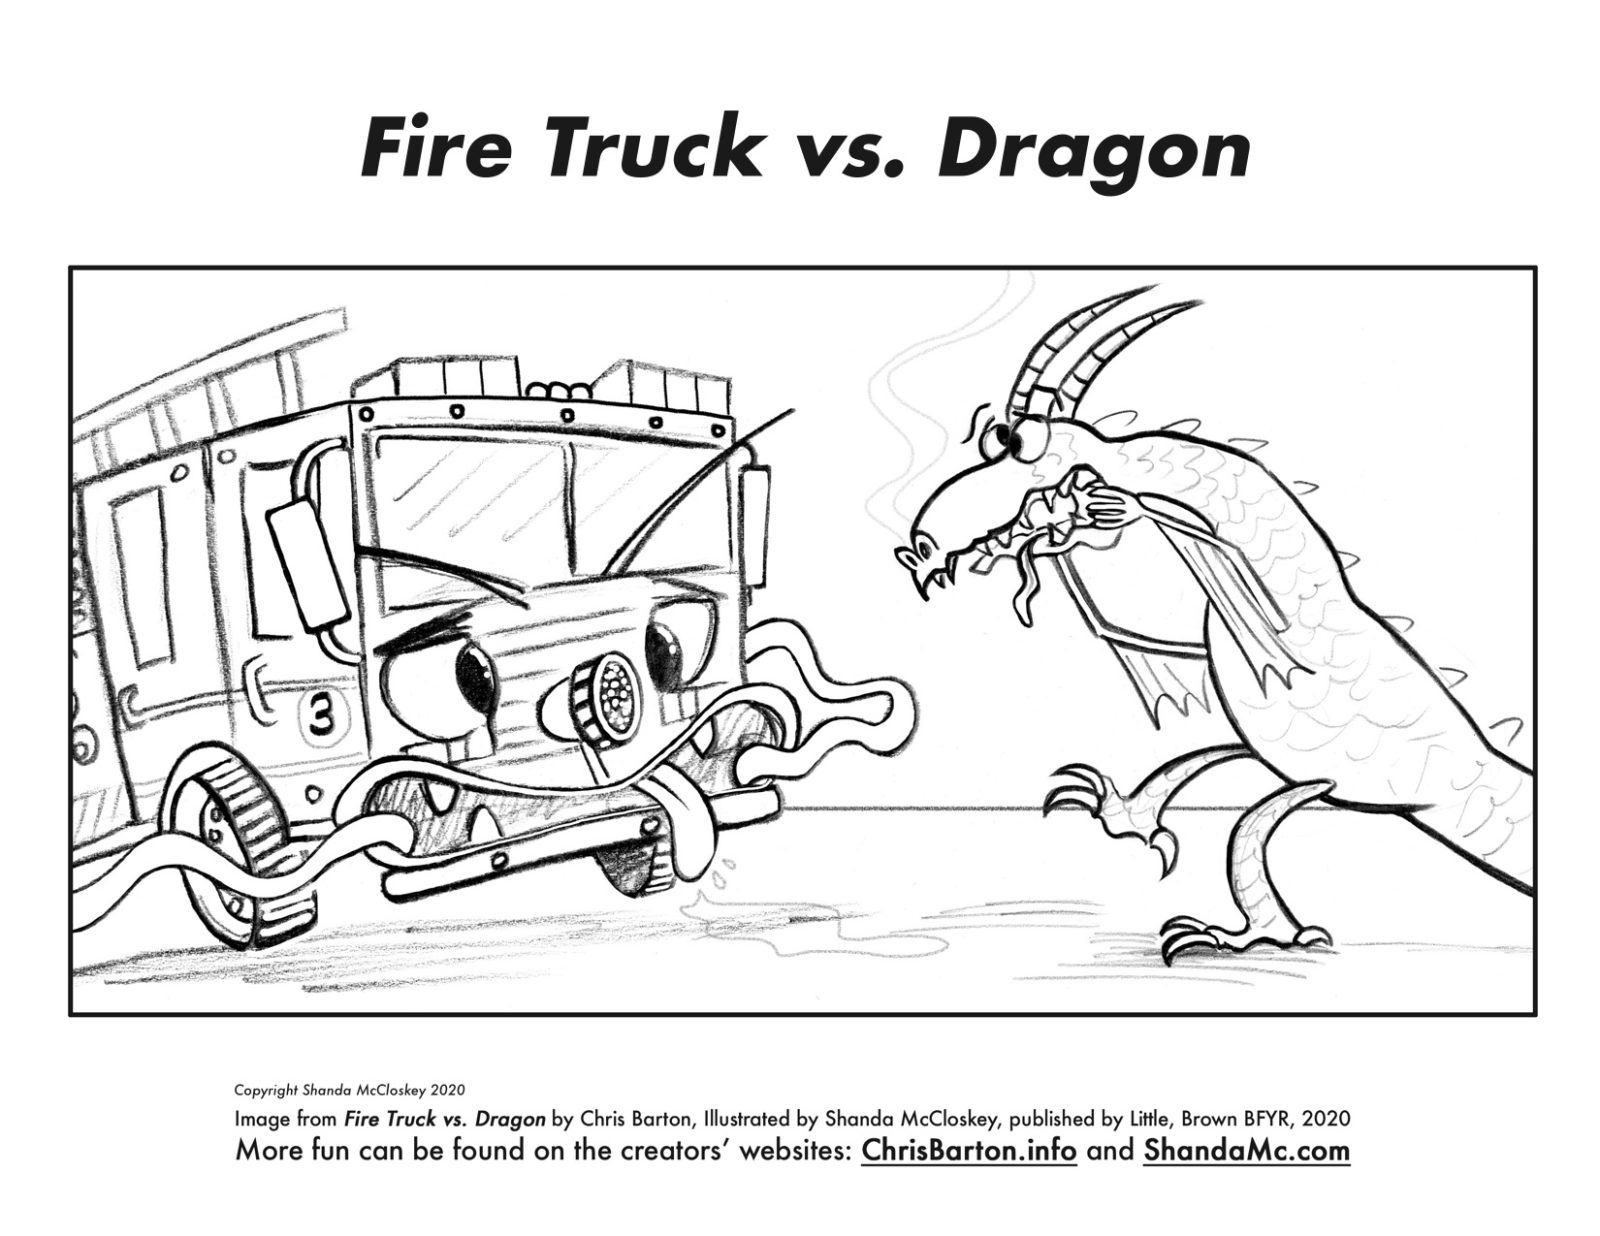 Fire Truck vs. Dragon coloring sheet making silly faces.